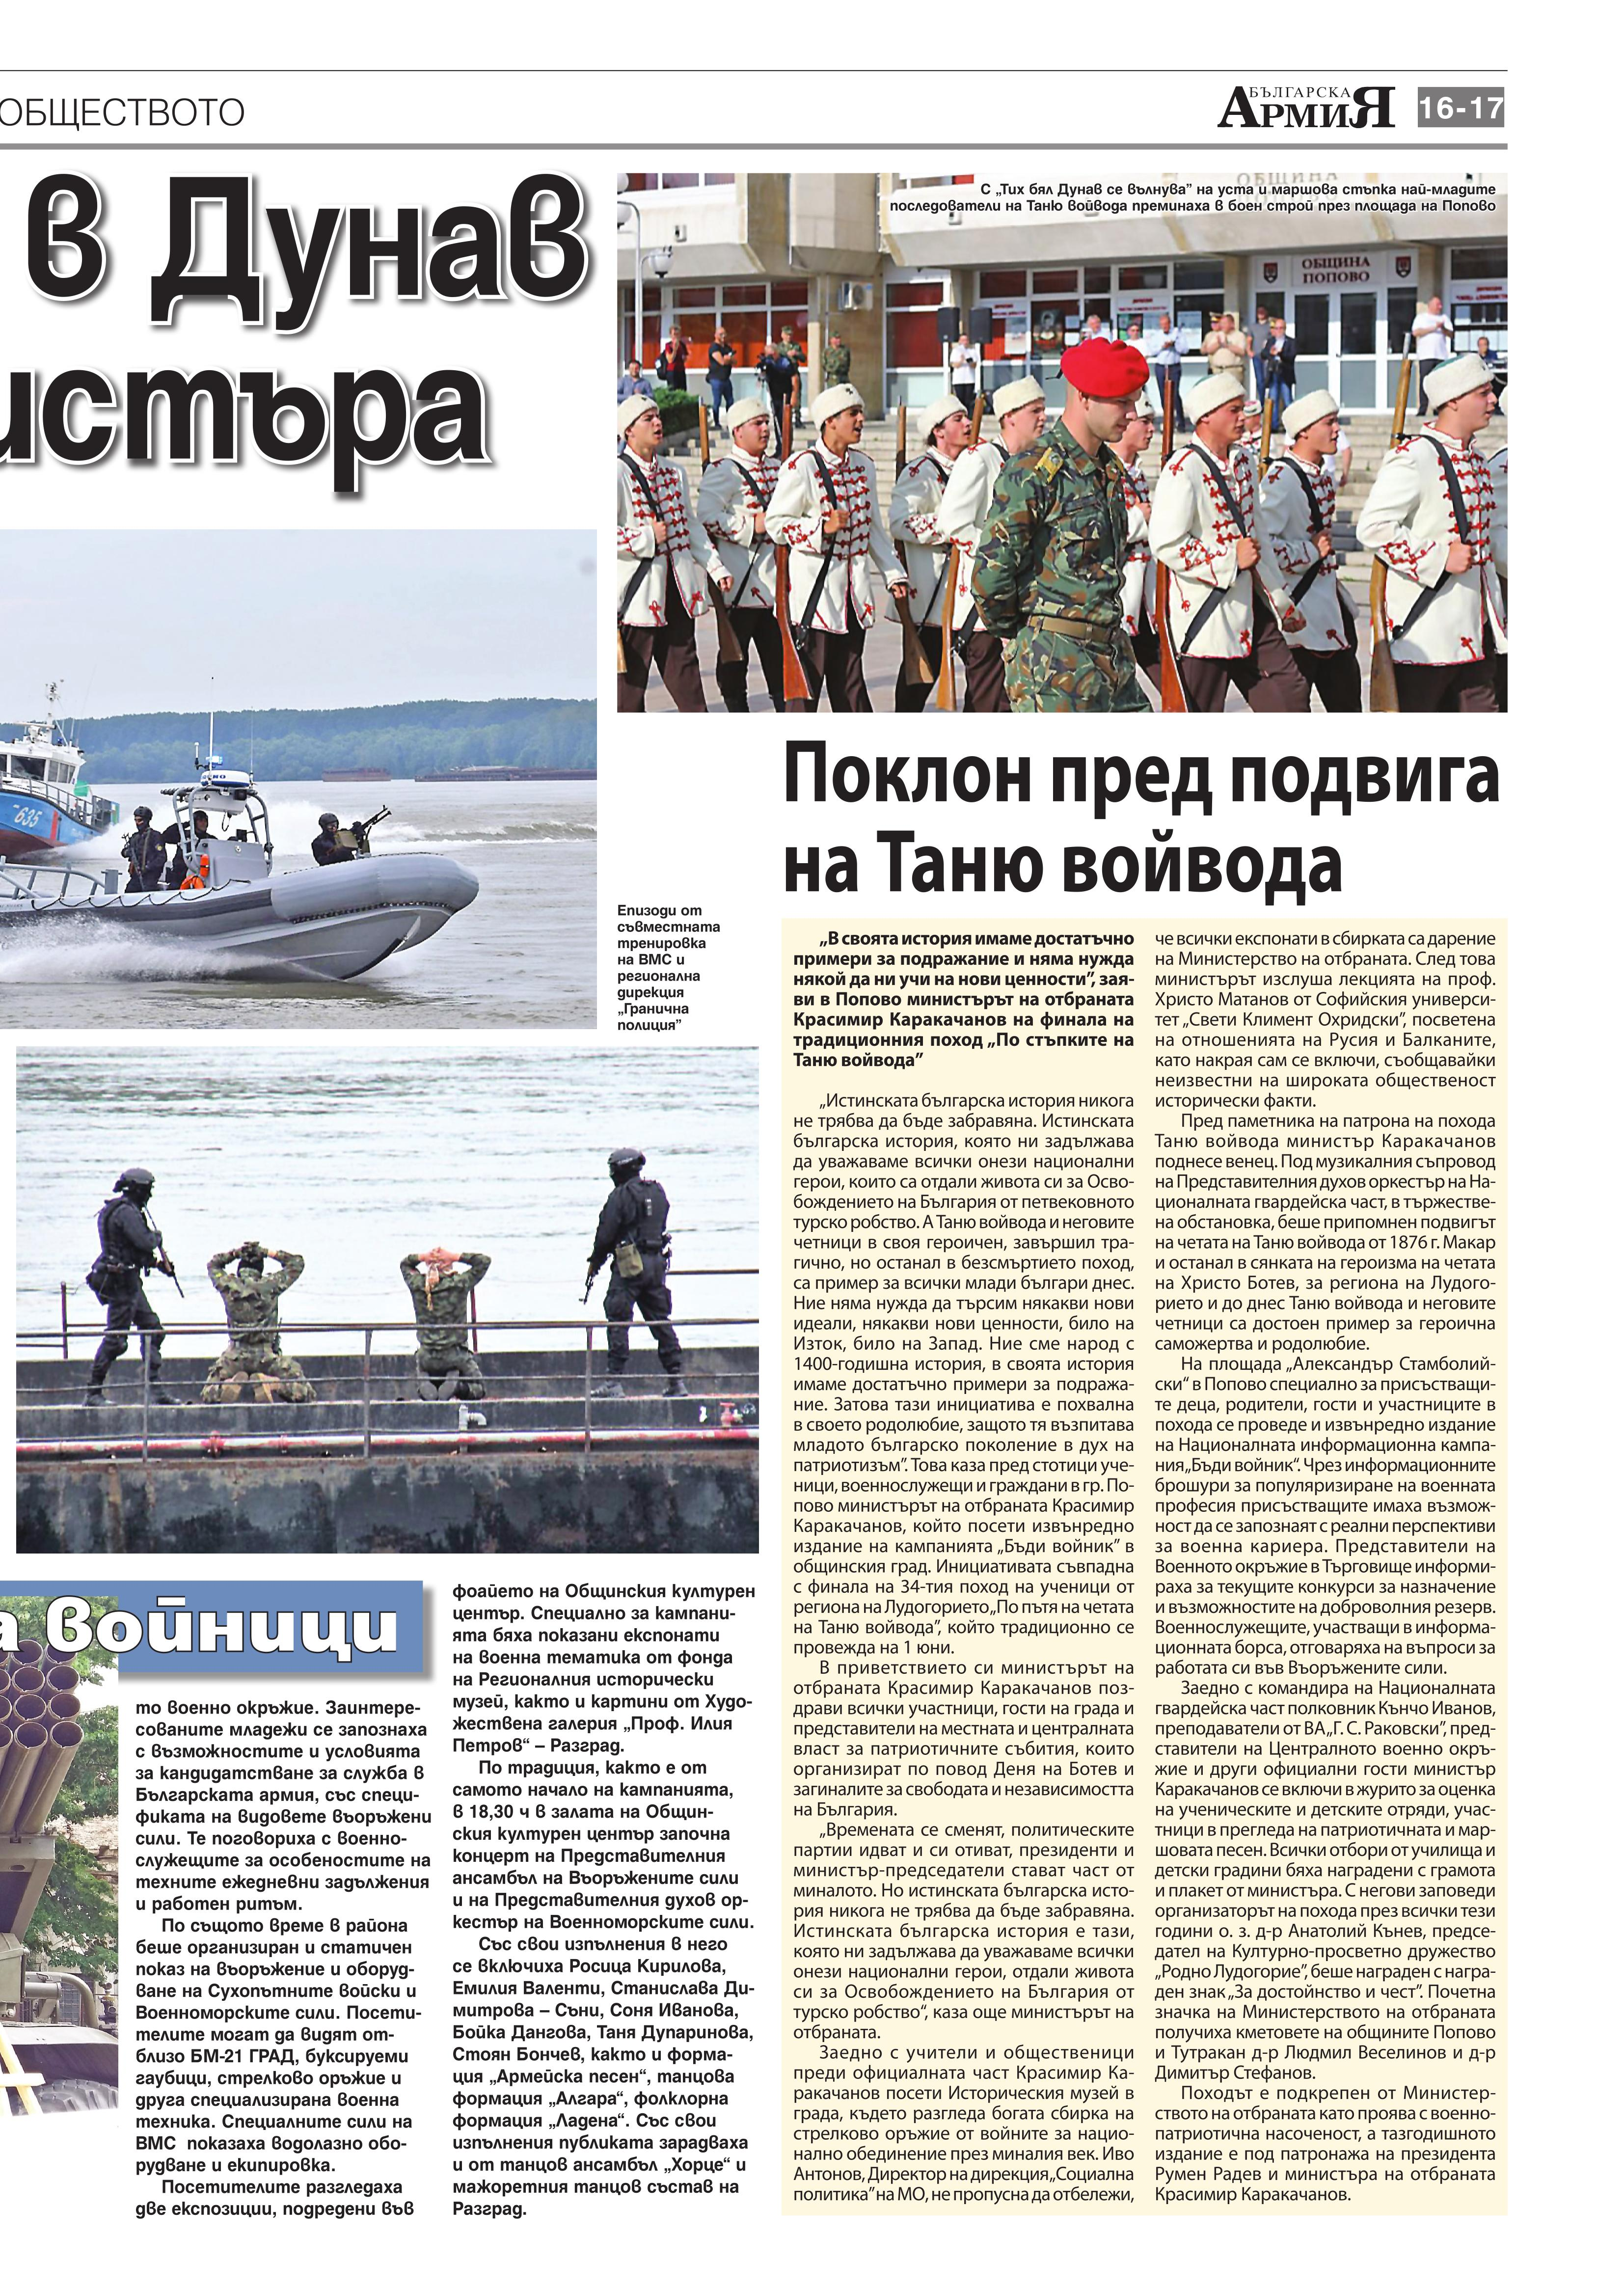 https://www.armymedia.bg/wp-content/uploads/2015/06/17.page1_-98.jpg